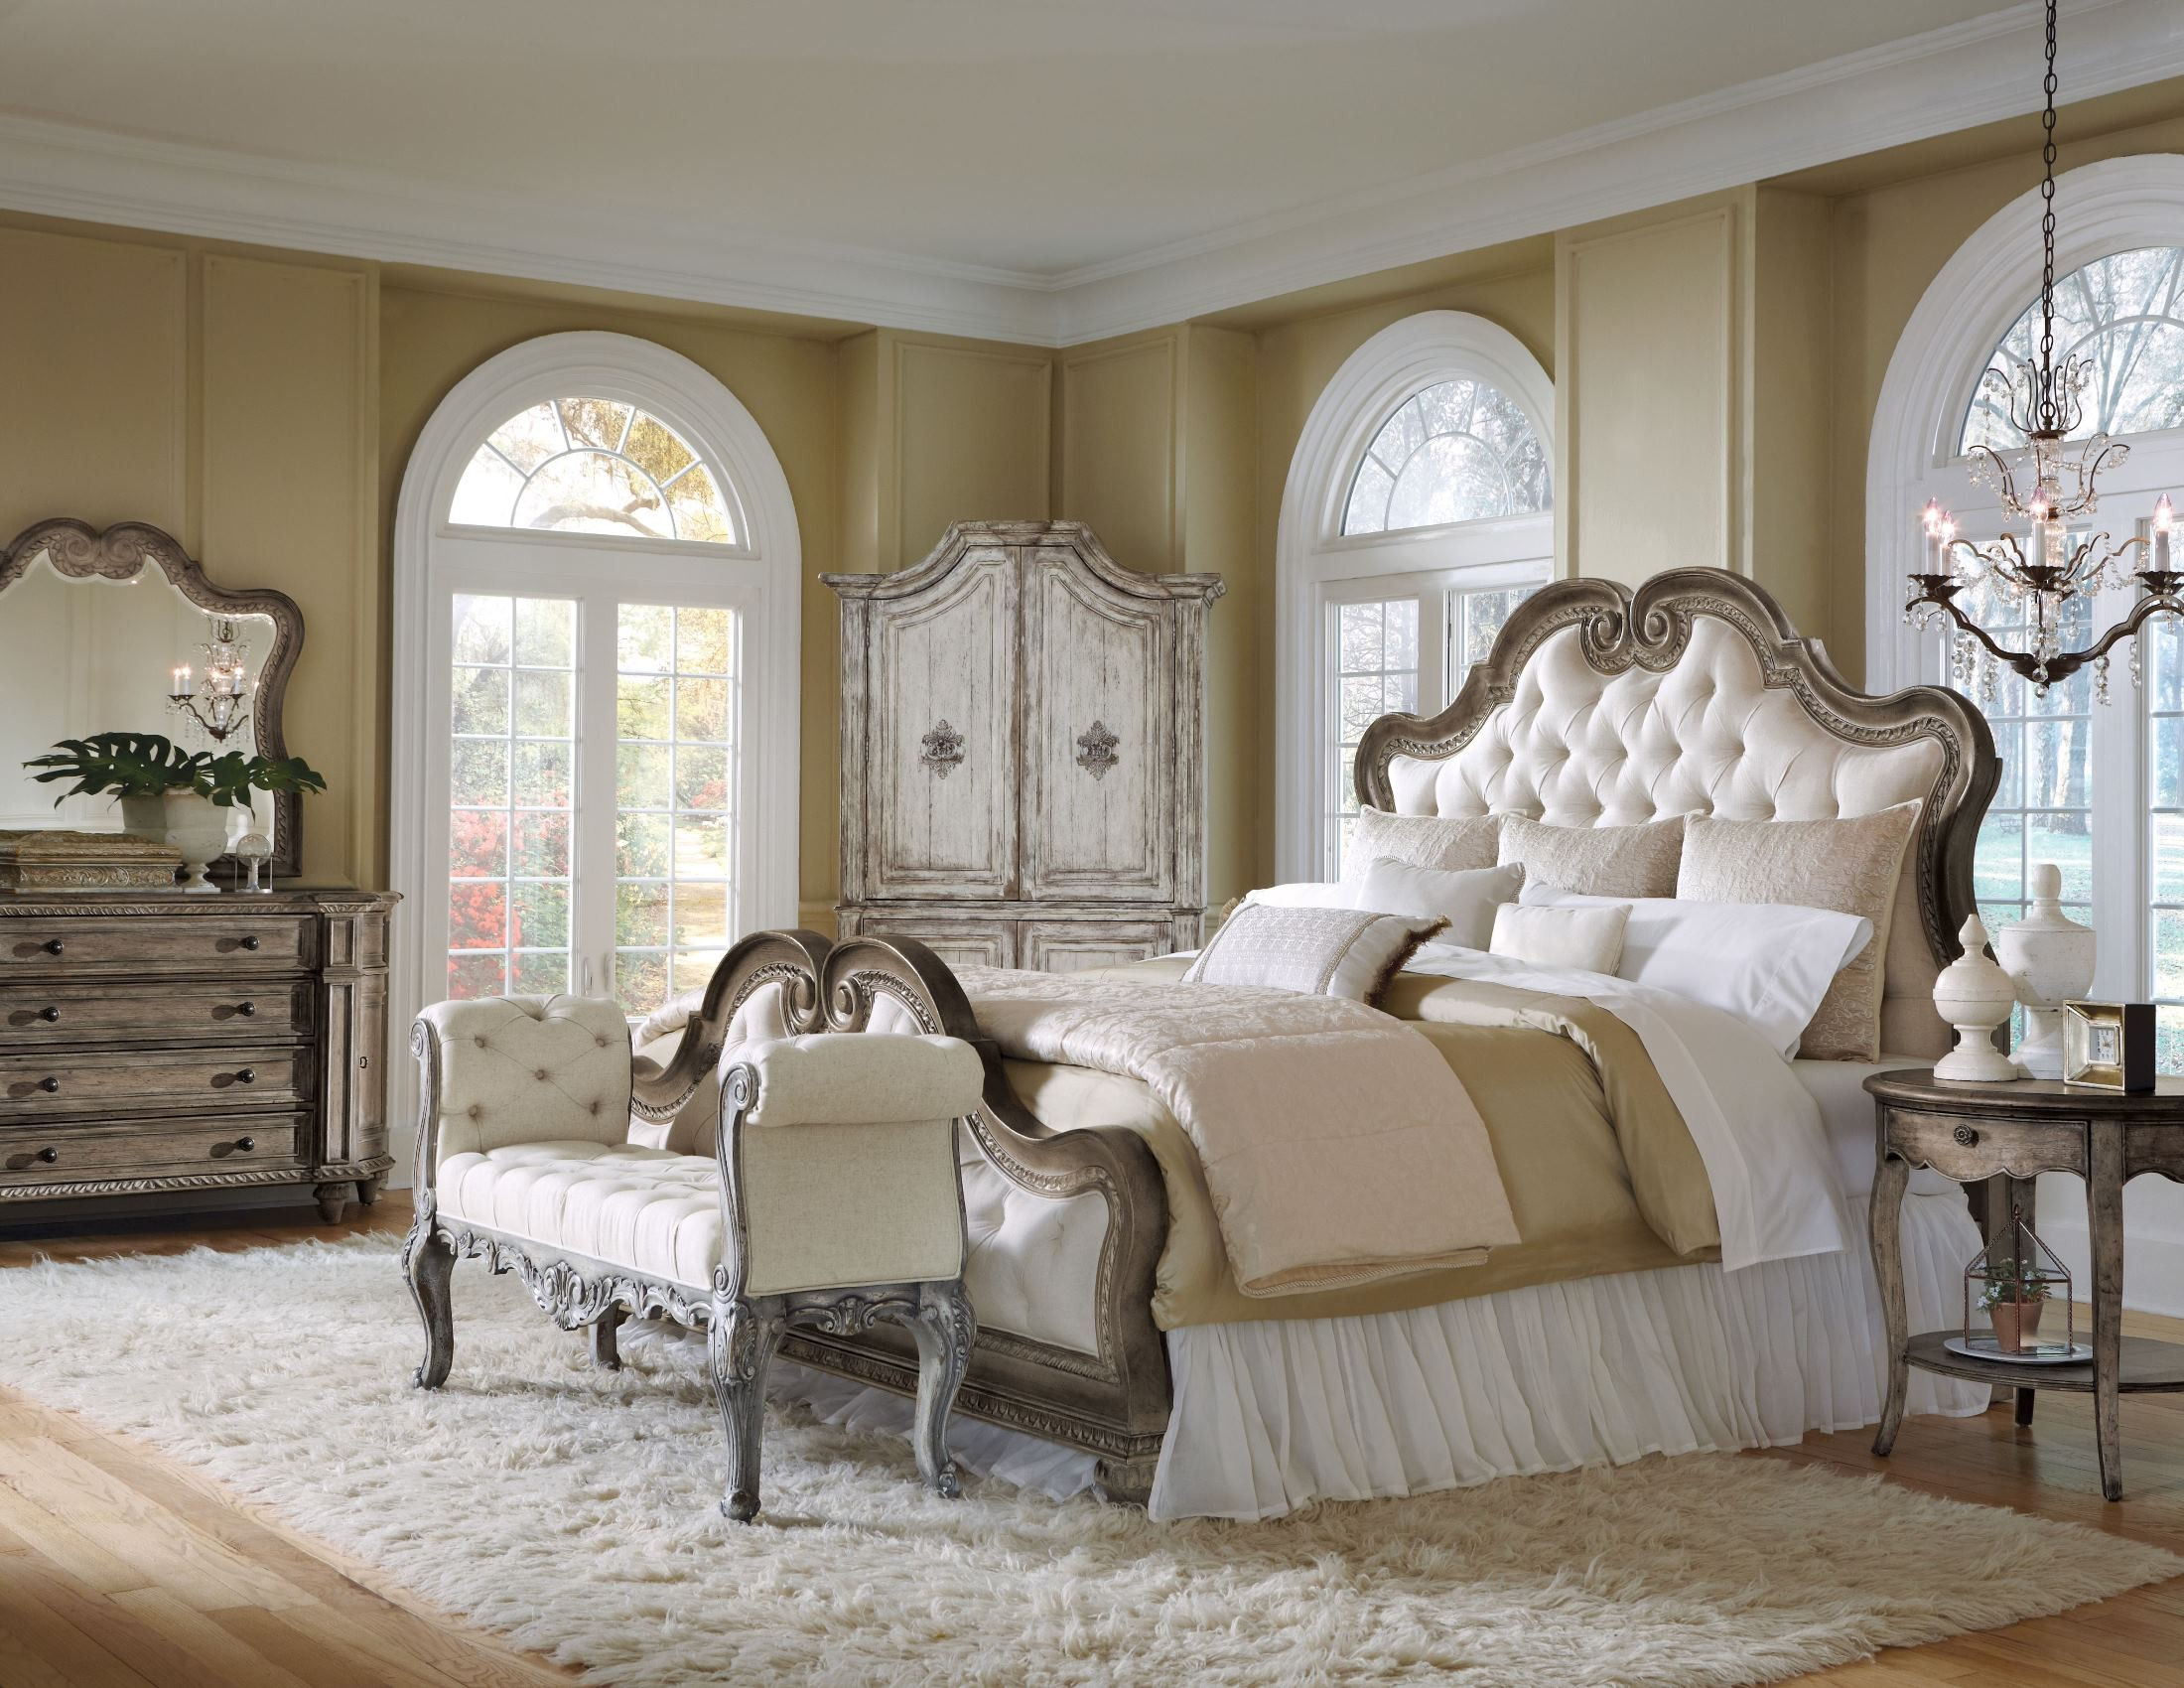 Pulaski Bedroom Furniture Arabella Upholstered Bedroom Set From Pulaski 211170 211171